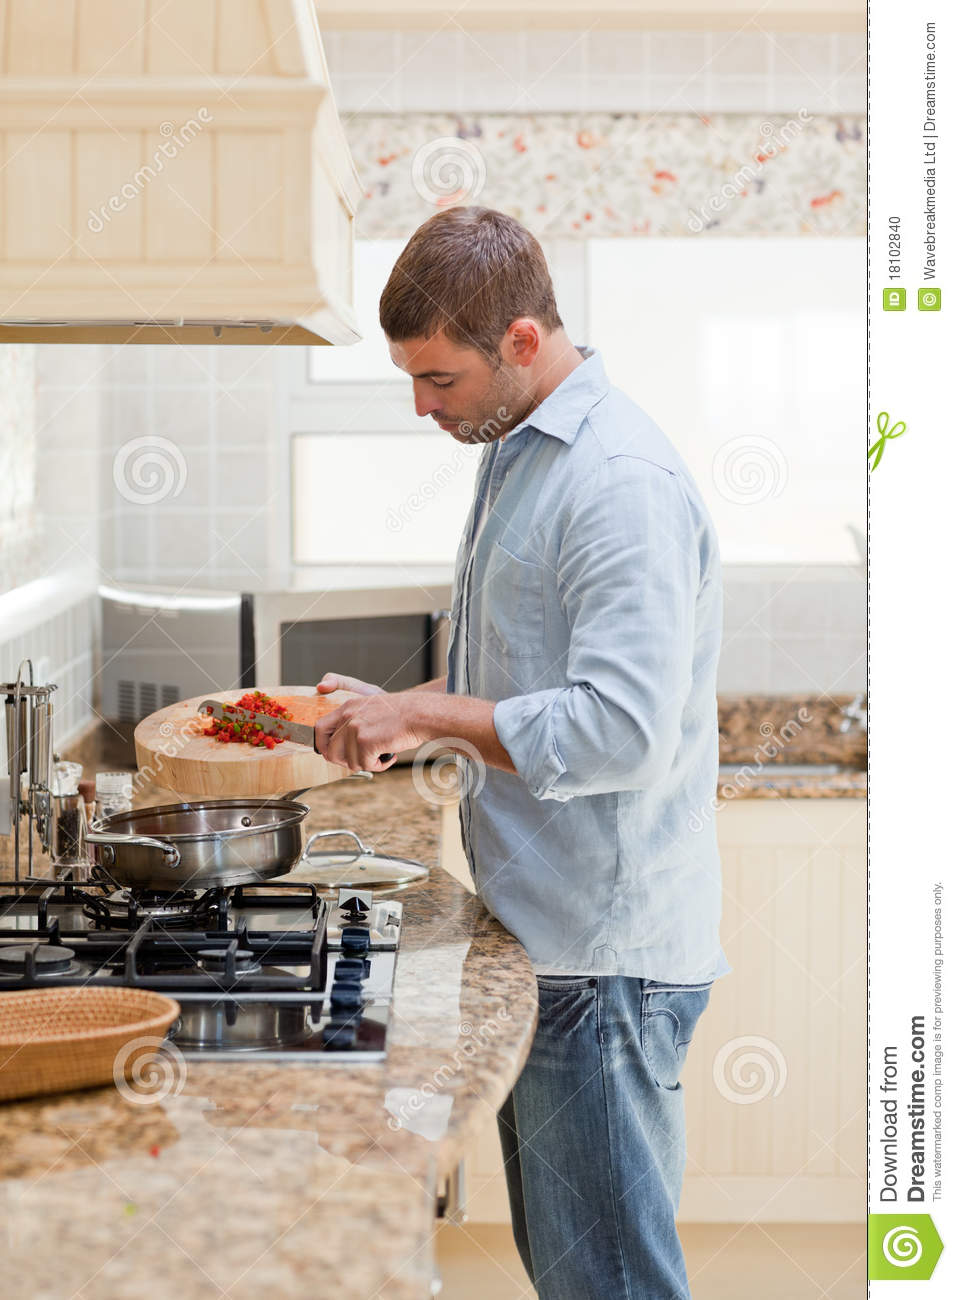 Handsome Man Cooking In The Kitchen Stock Photo - Image ...